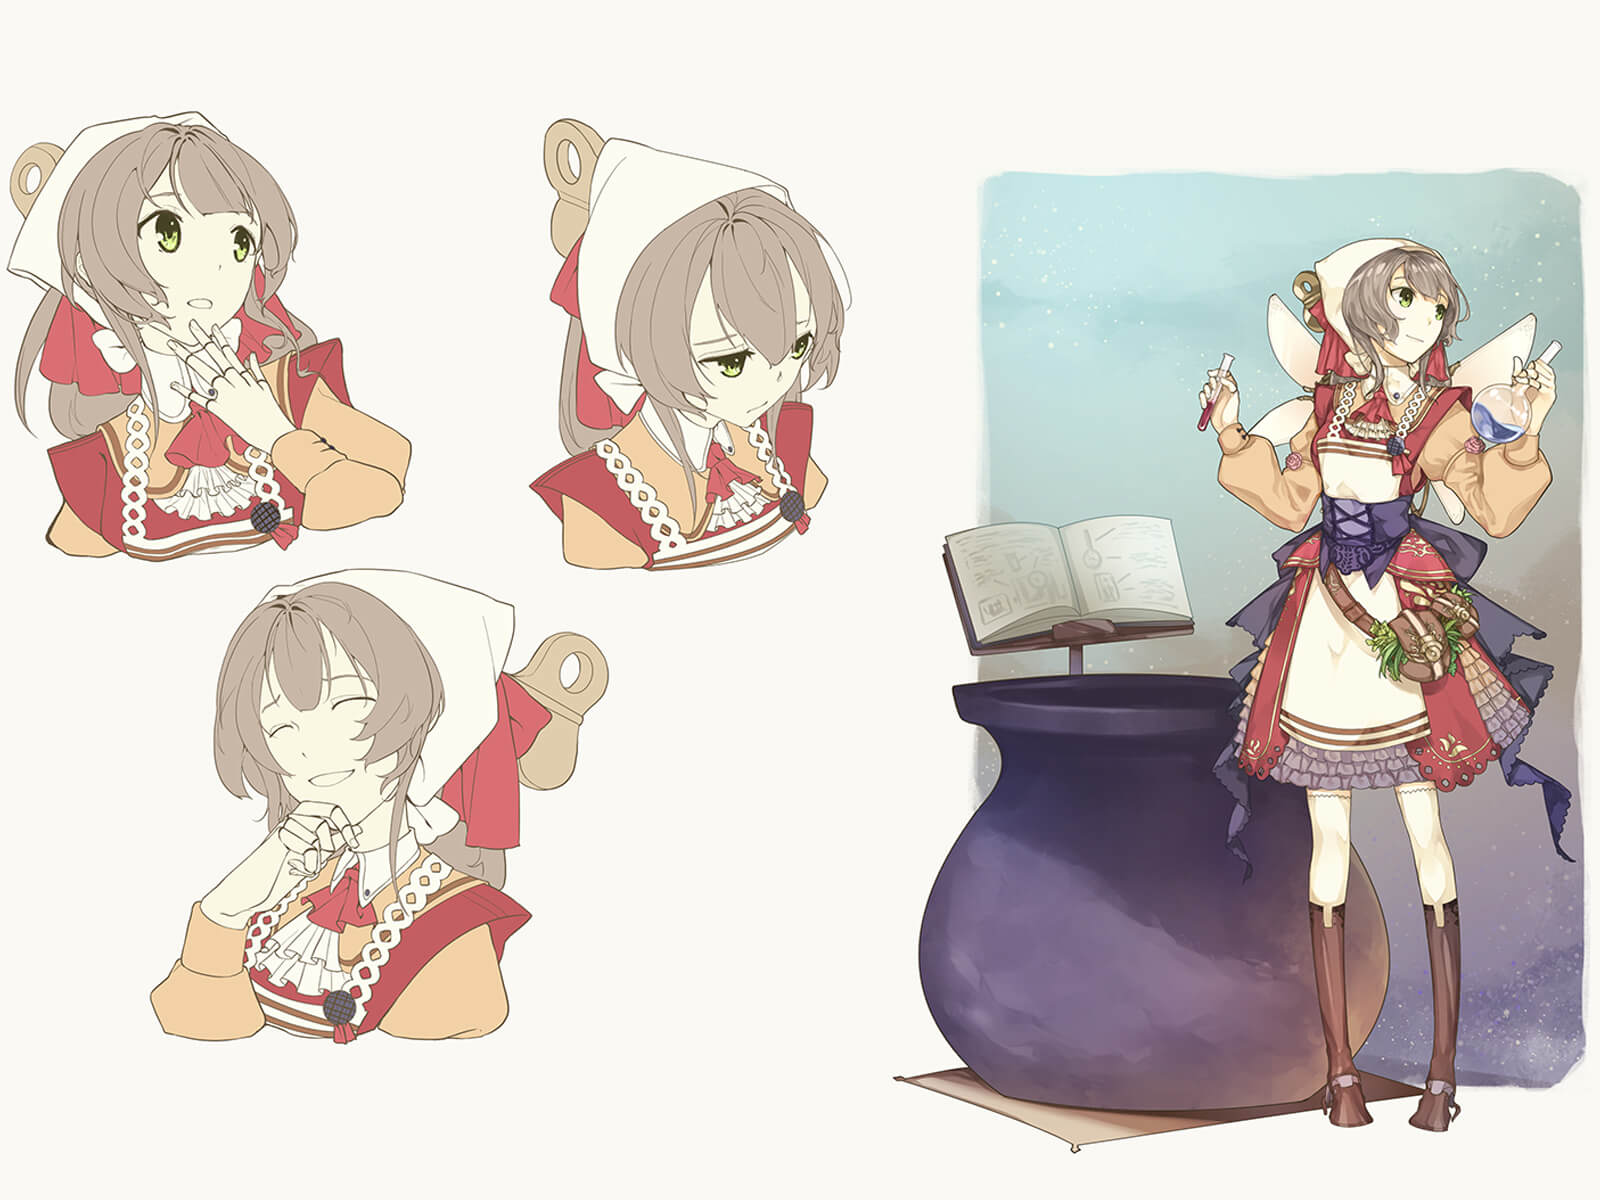 Character sketches of a young woman in red-white-and-blue country-style garb holding an ornate magical staff.